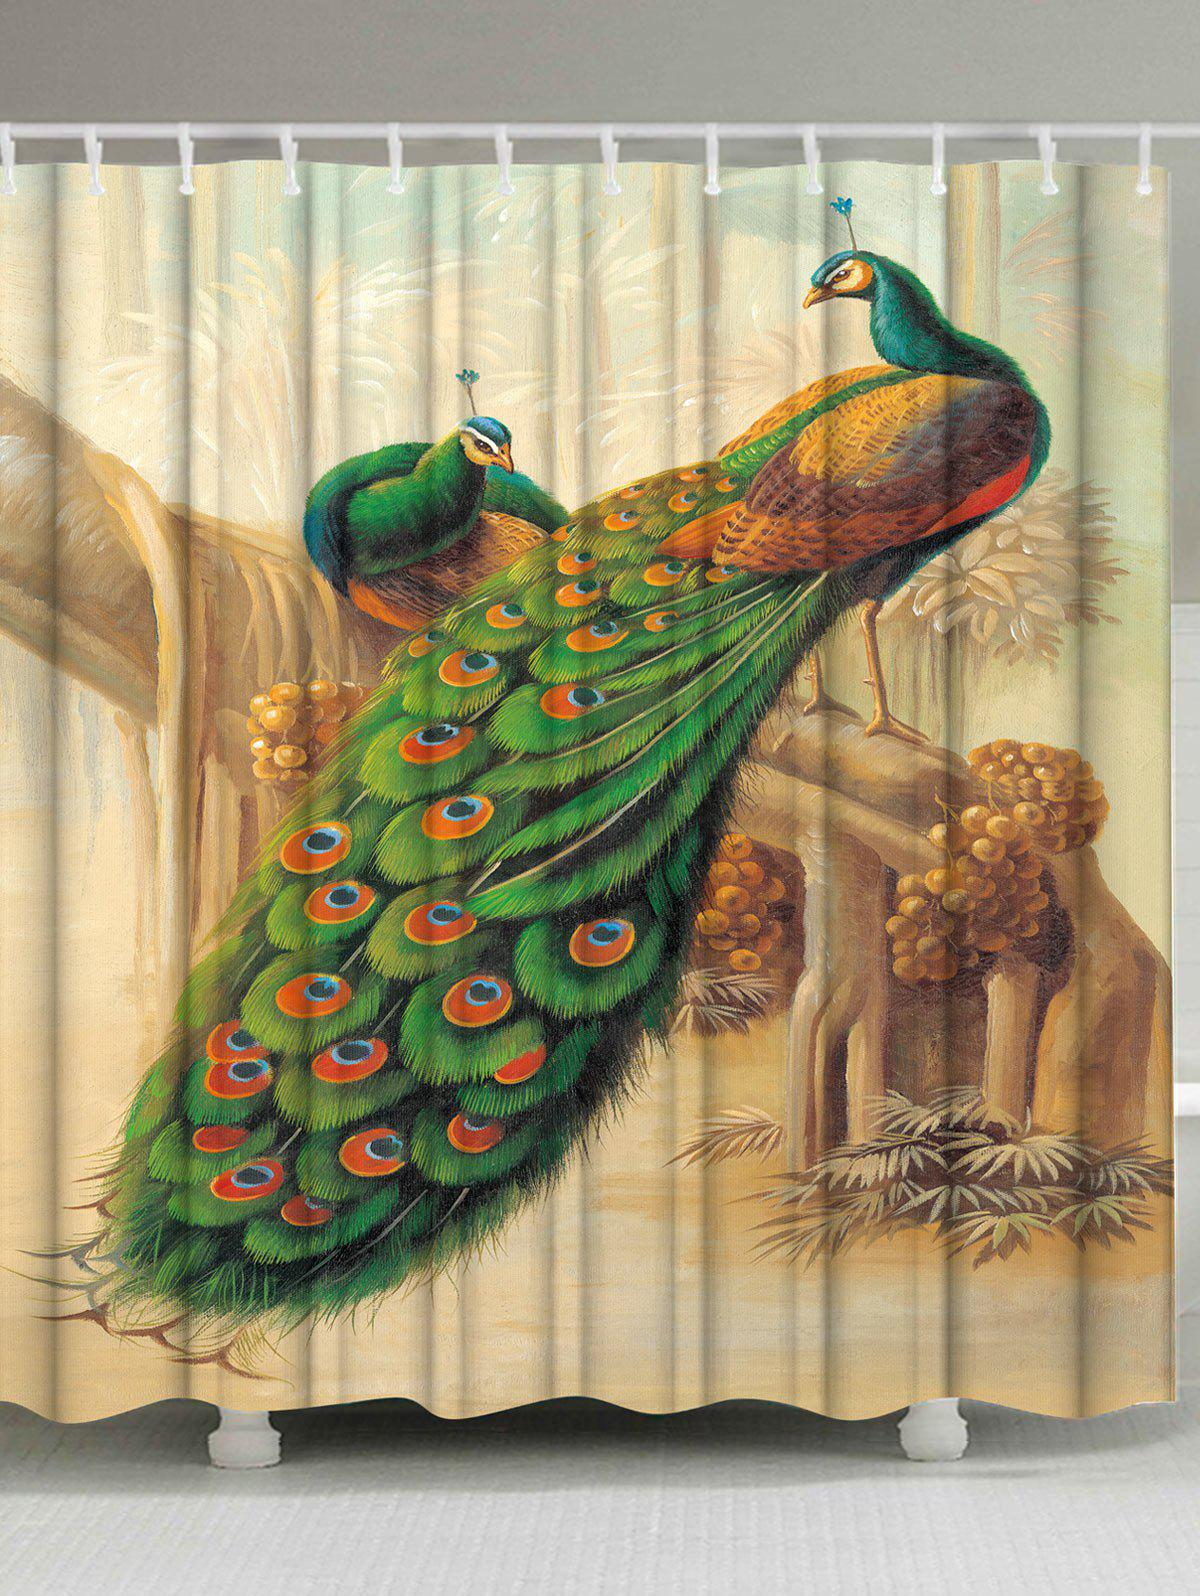 Peacock Bathroom Decoration Shower Curtain - COLORMIX W71 INCH * L79 INCH